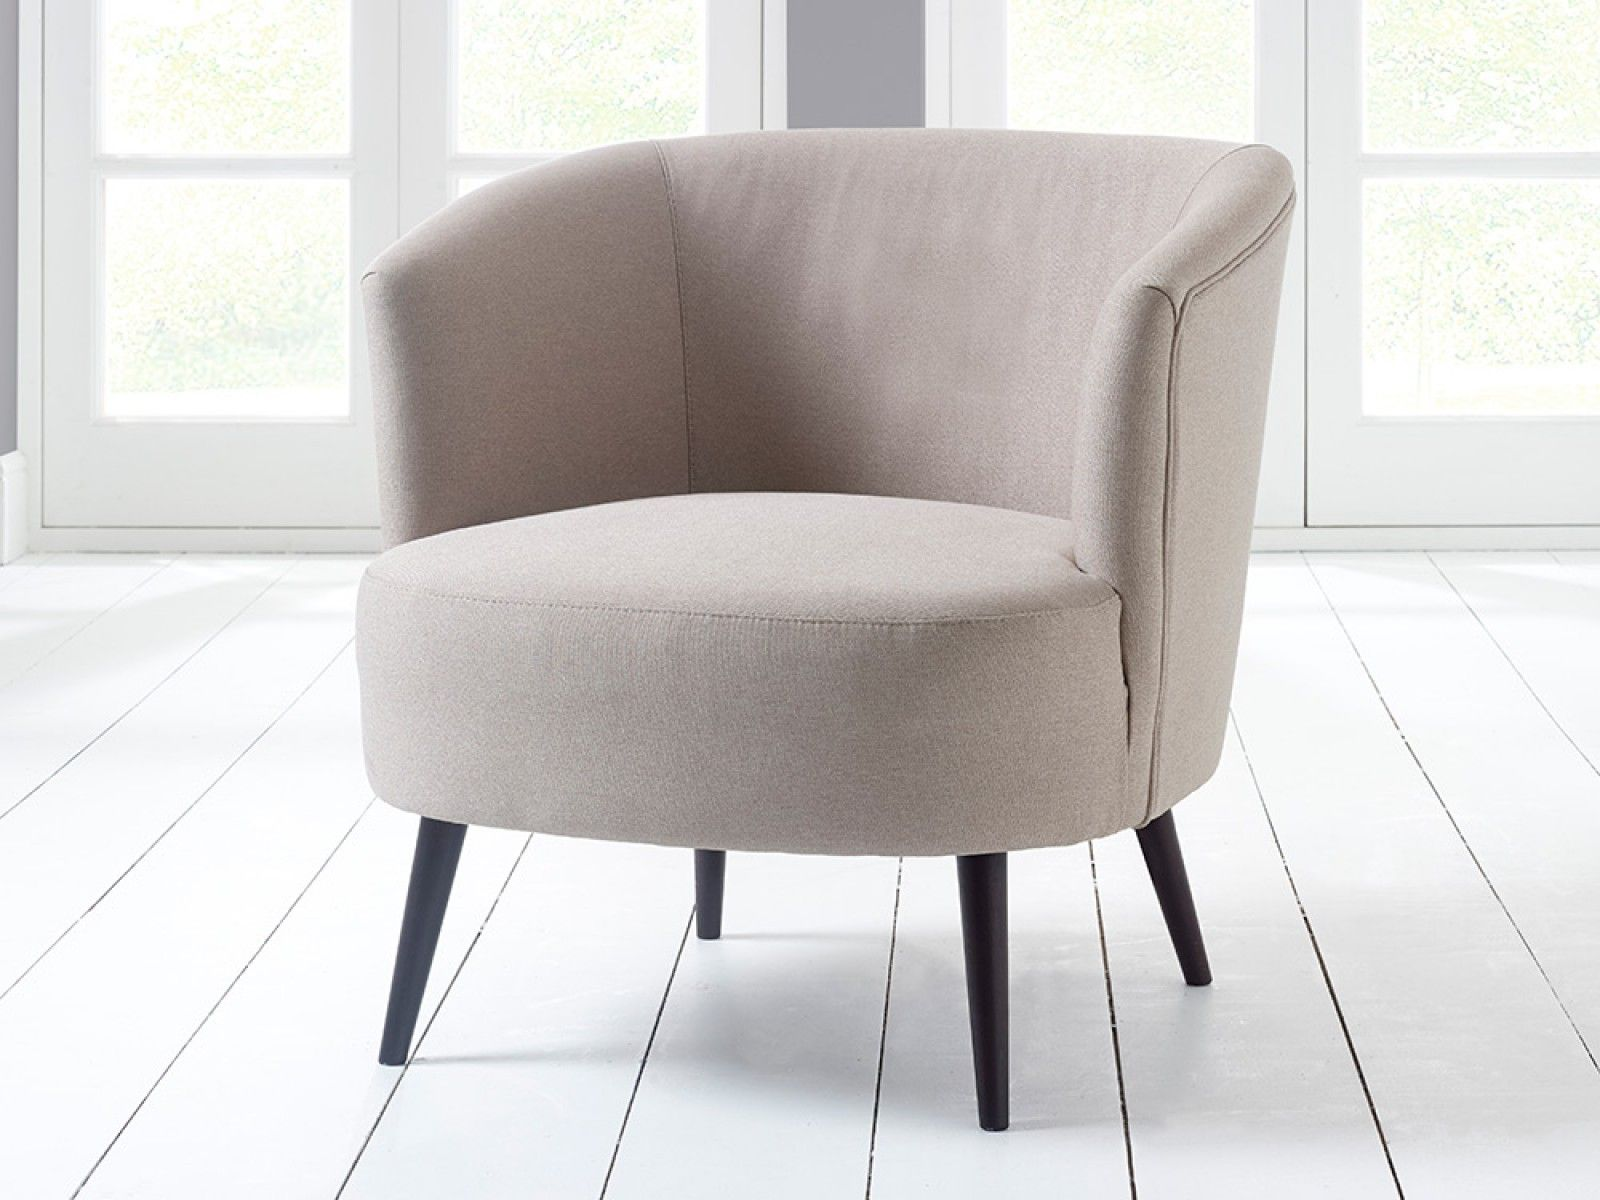 Small Armchair For Bedroom In 2020 Bedroom Chairs Uk Bedroom Chair Side Chairs Bedroom